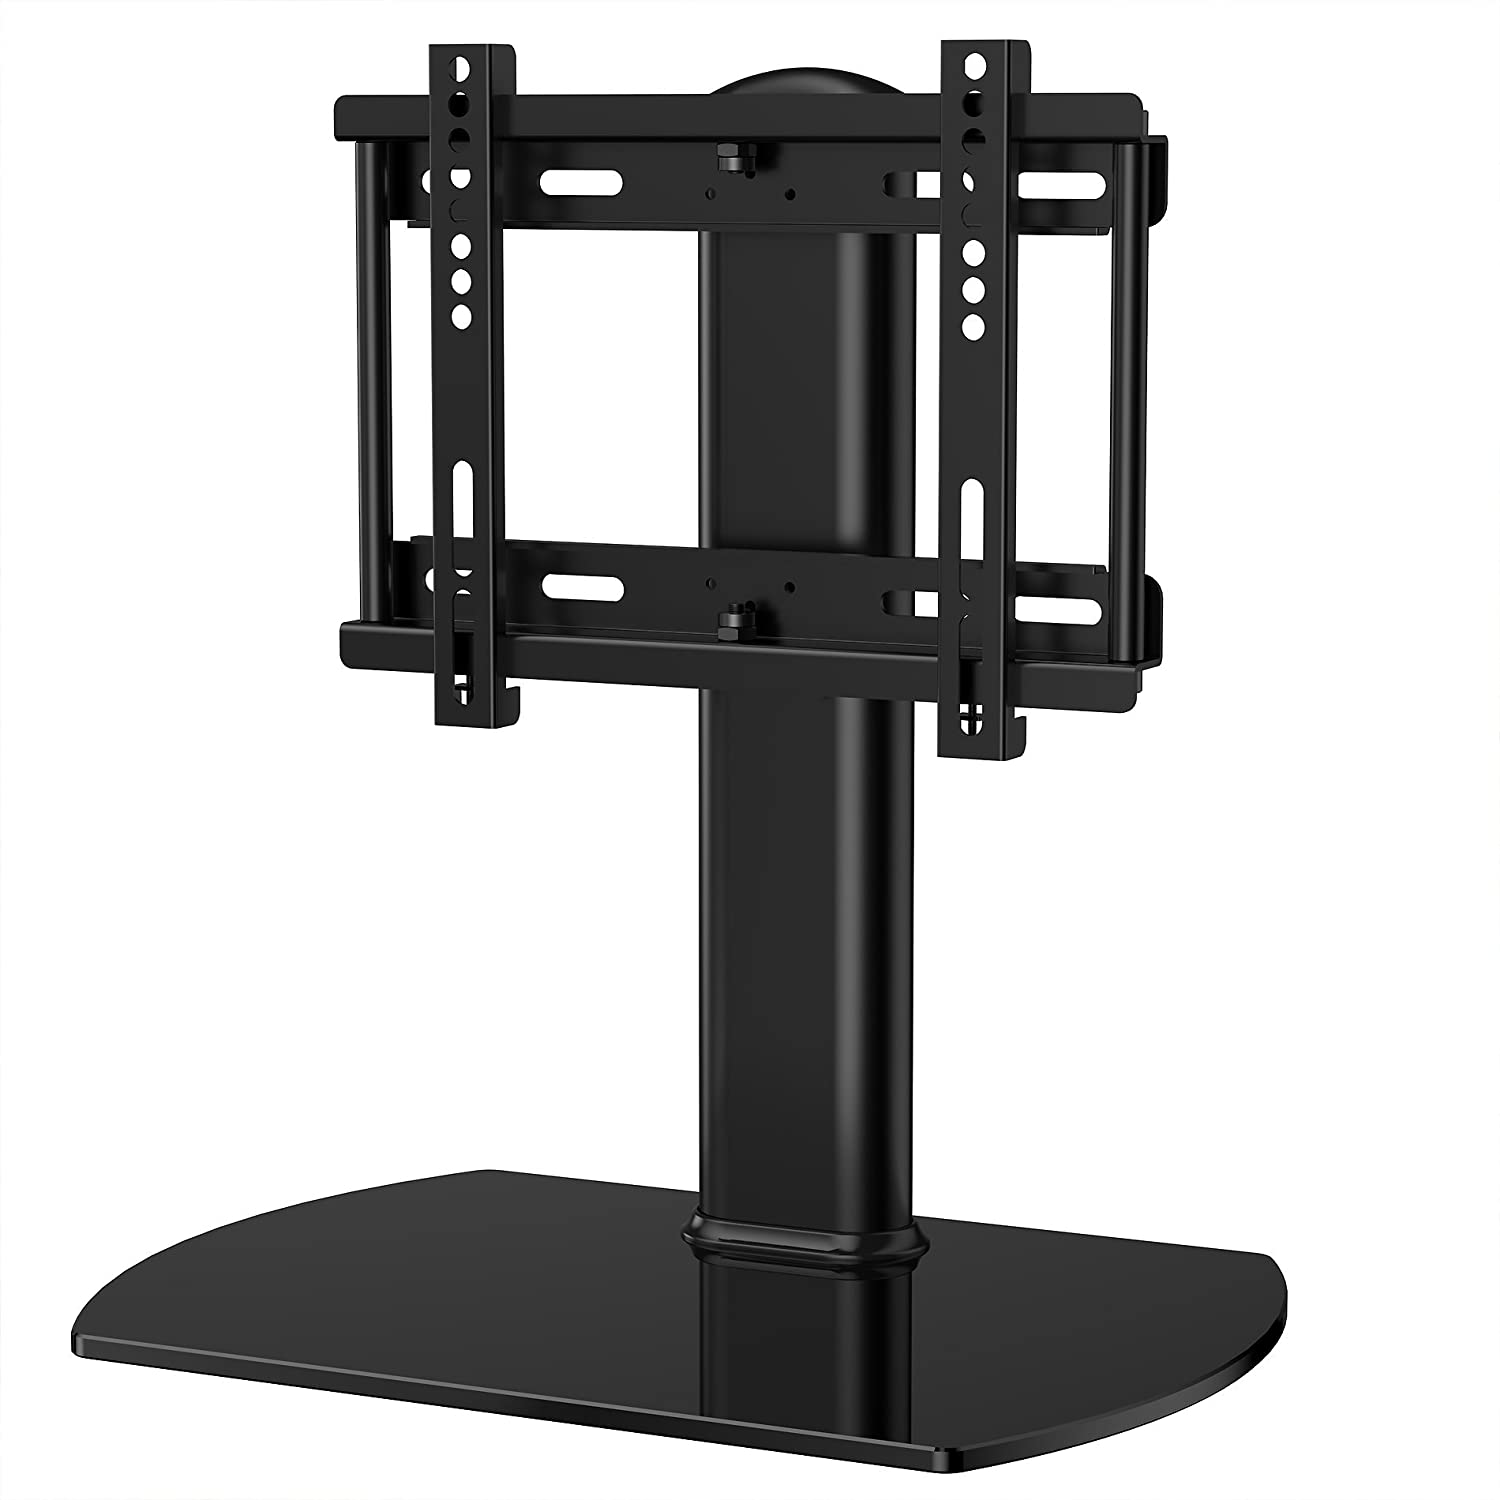 FITUEYES TT104001GB Universal TV Stand/Base Swivel Tabletop TV Stand with mount for up to 32 inch Flat screen Tvs/xbox One/tv Component/Vizio TV. Fenge FBA_COMINHKG085390